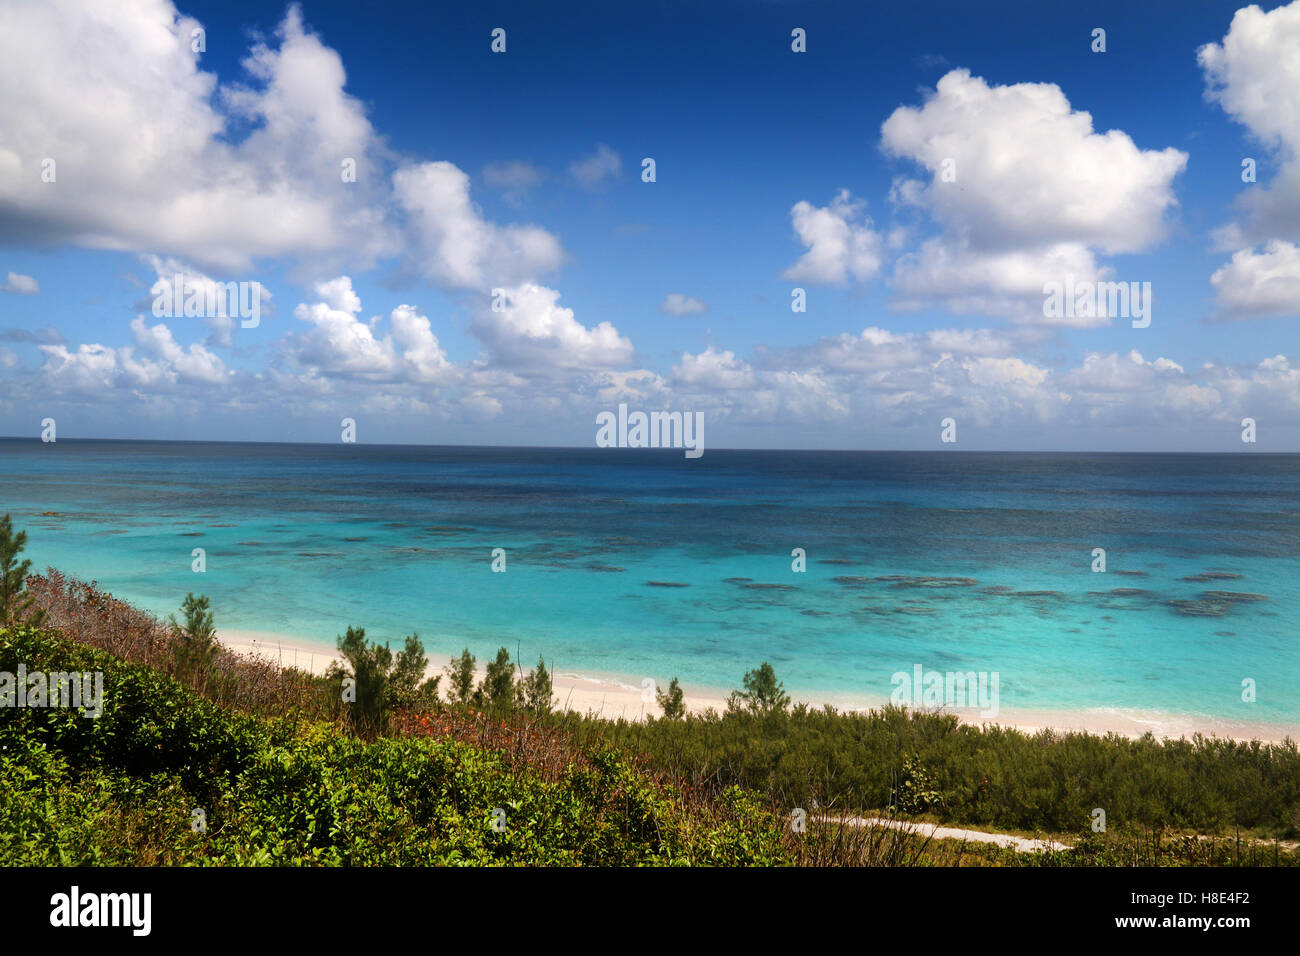 Bermuda Atlantic ocean view from coastline, on a beautiful summer day. - Stock Image